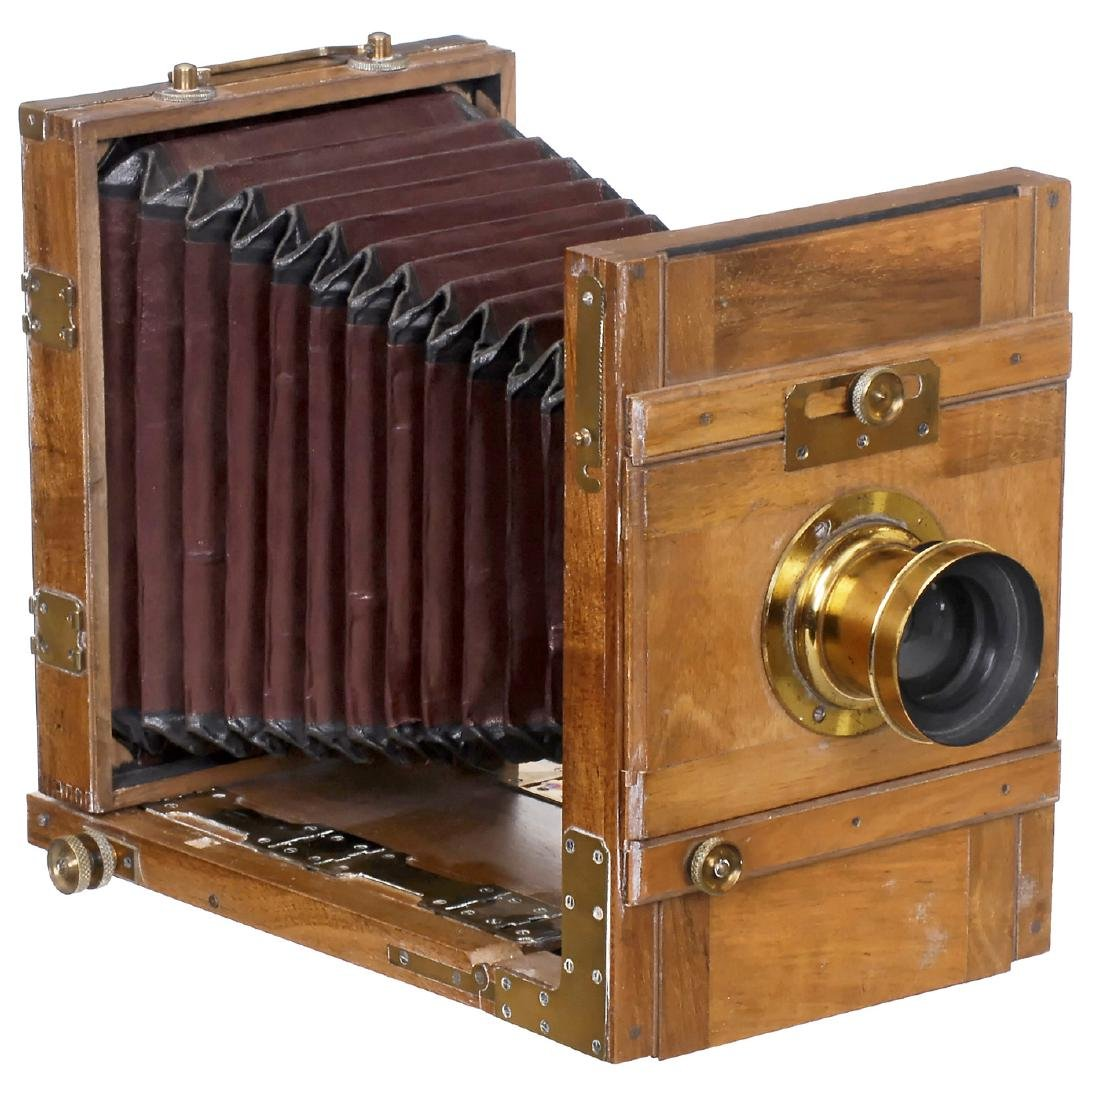 French Field Camera, c. 1880